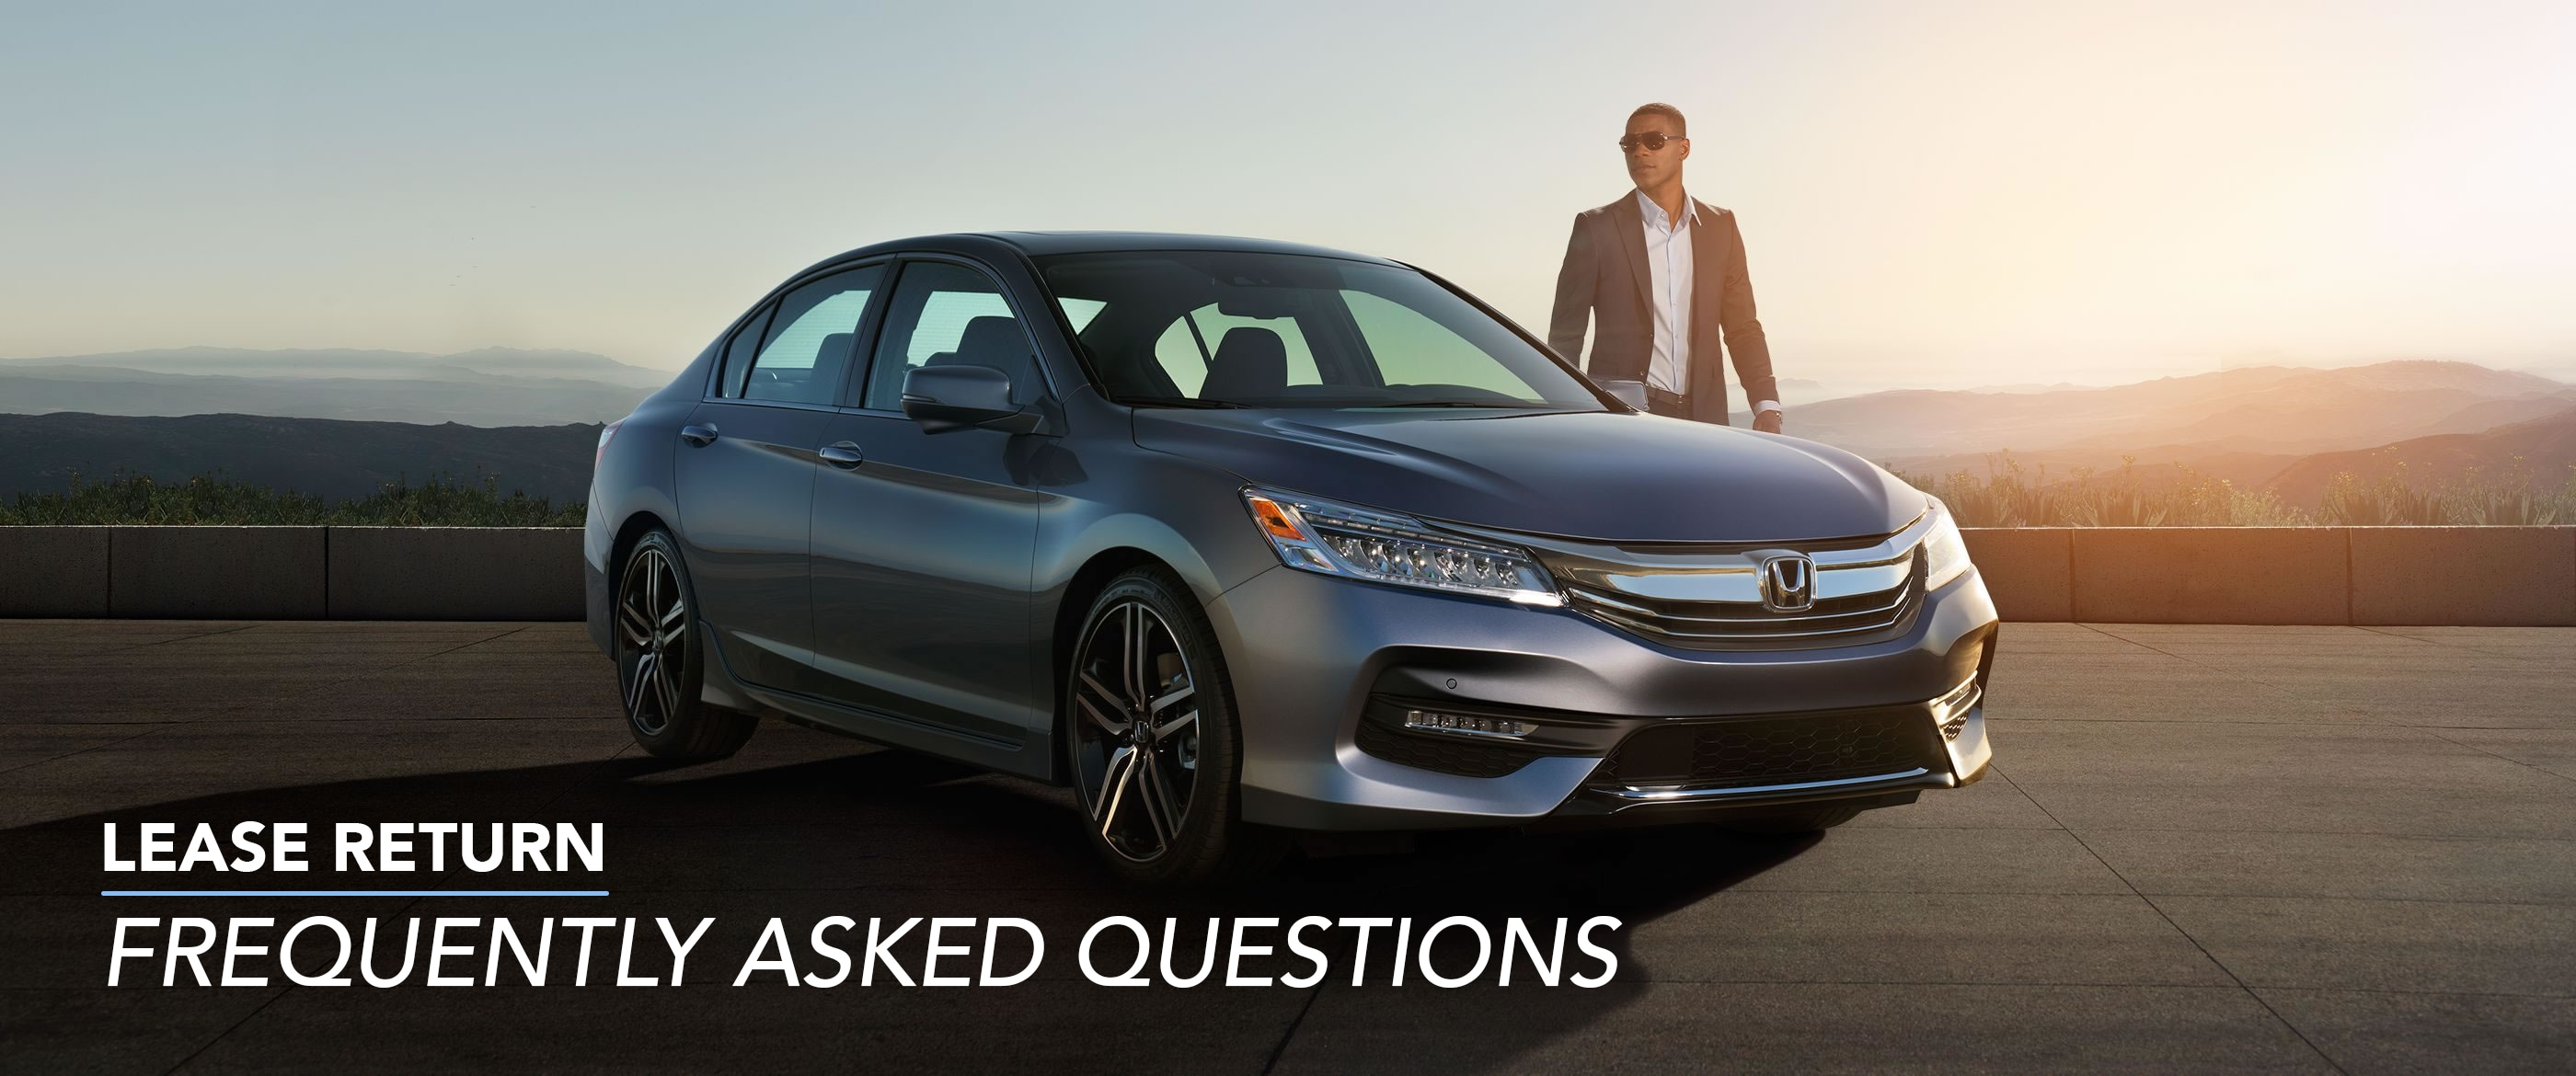 High Quality DO I HAVE TO RETURN MY Honda LEASE TO THE DEALER THAT I PURCHASED IT FROM?